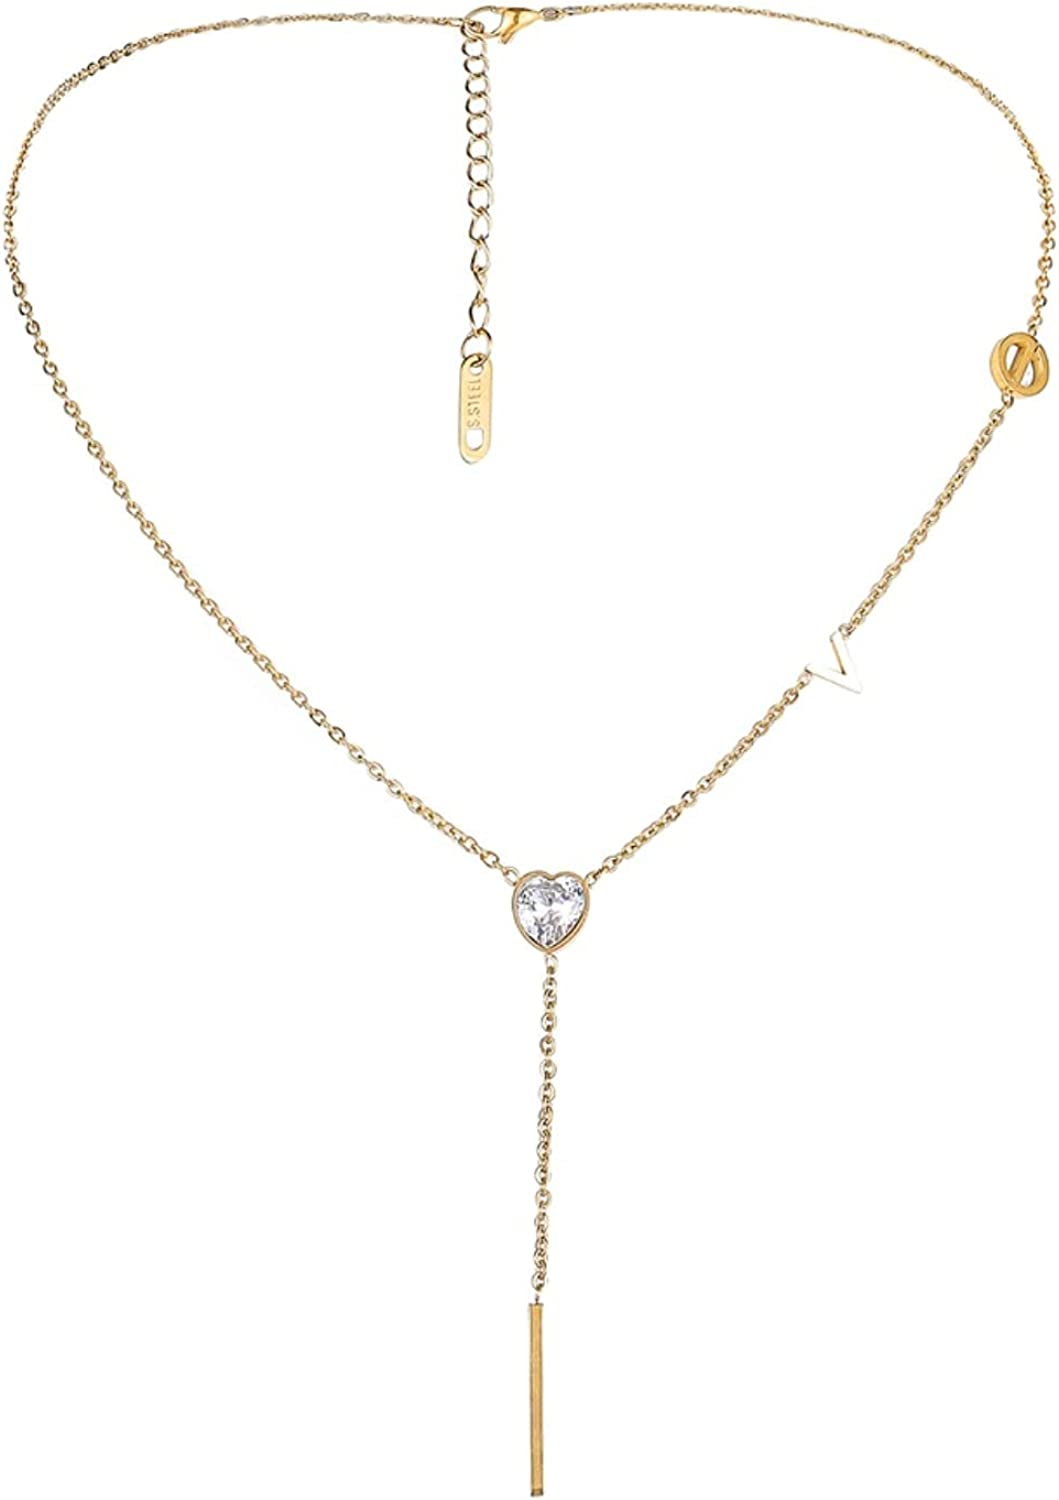 NEULRY Long LOVE Pendant Y-Necklace for Women, Golden Bar Tassel with Heart-shaped Rhinestone Y-Necklace